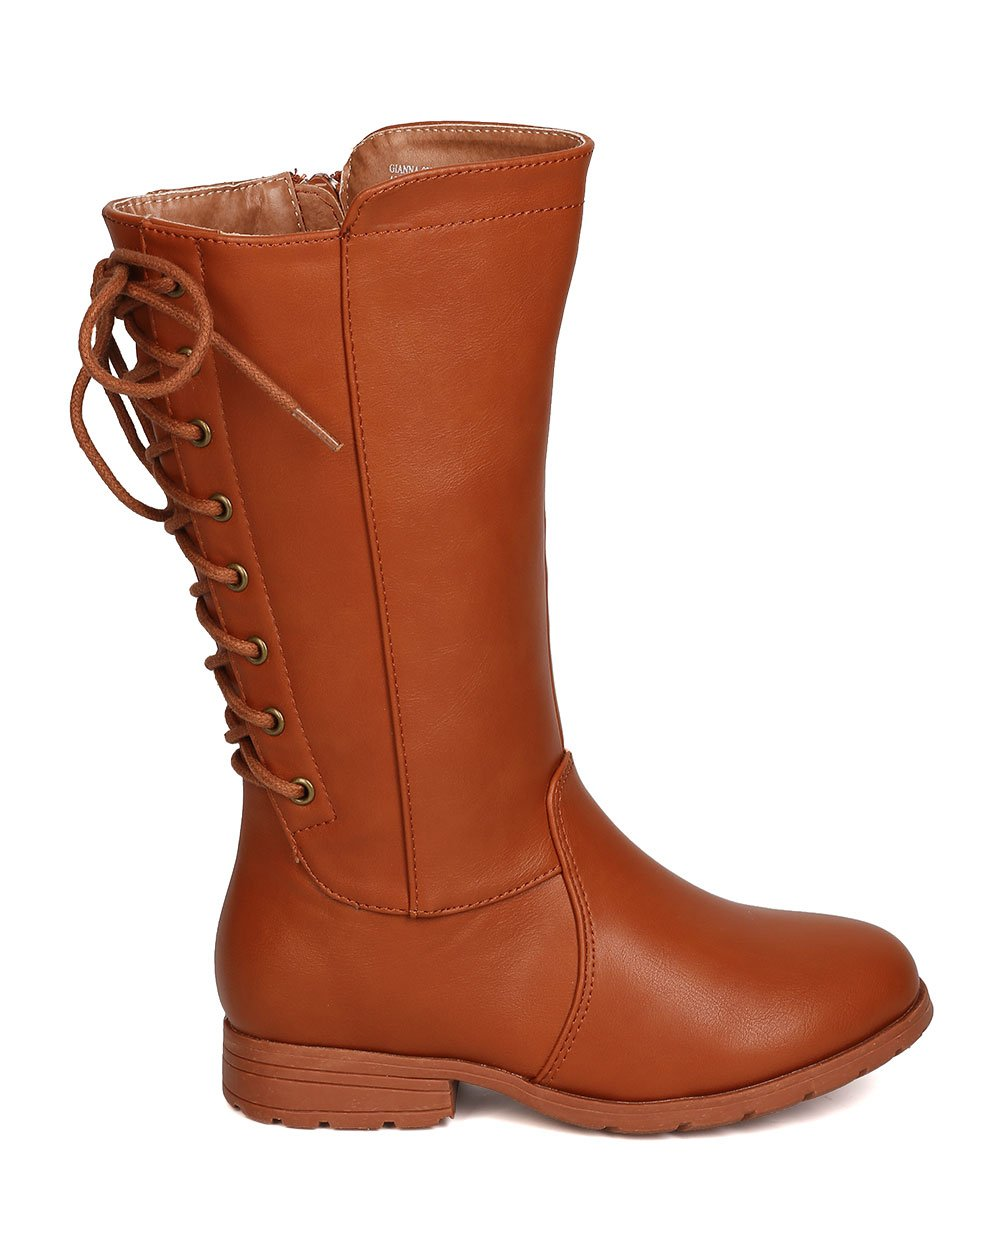 Girls Leatherette Back Lace Up Tall Riding Boot GB45 - Cognac (Size: Big Kid 3) by Little Angel (Image #2)